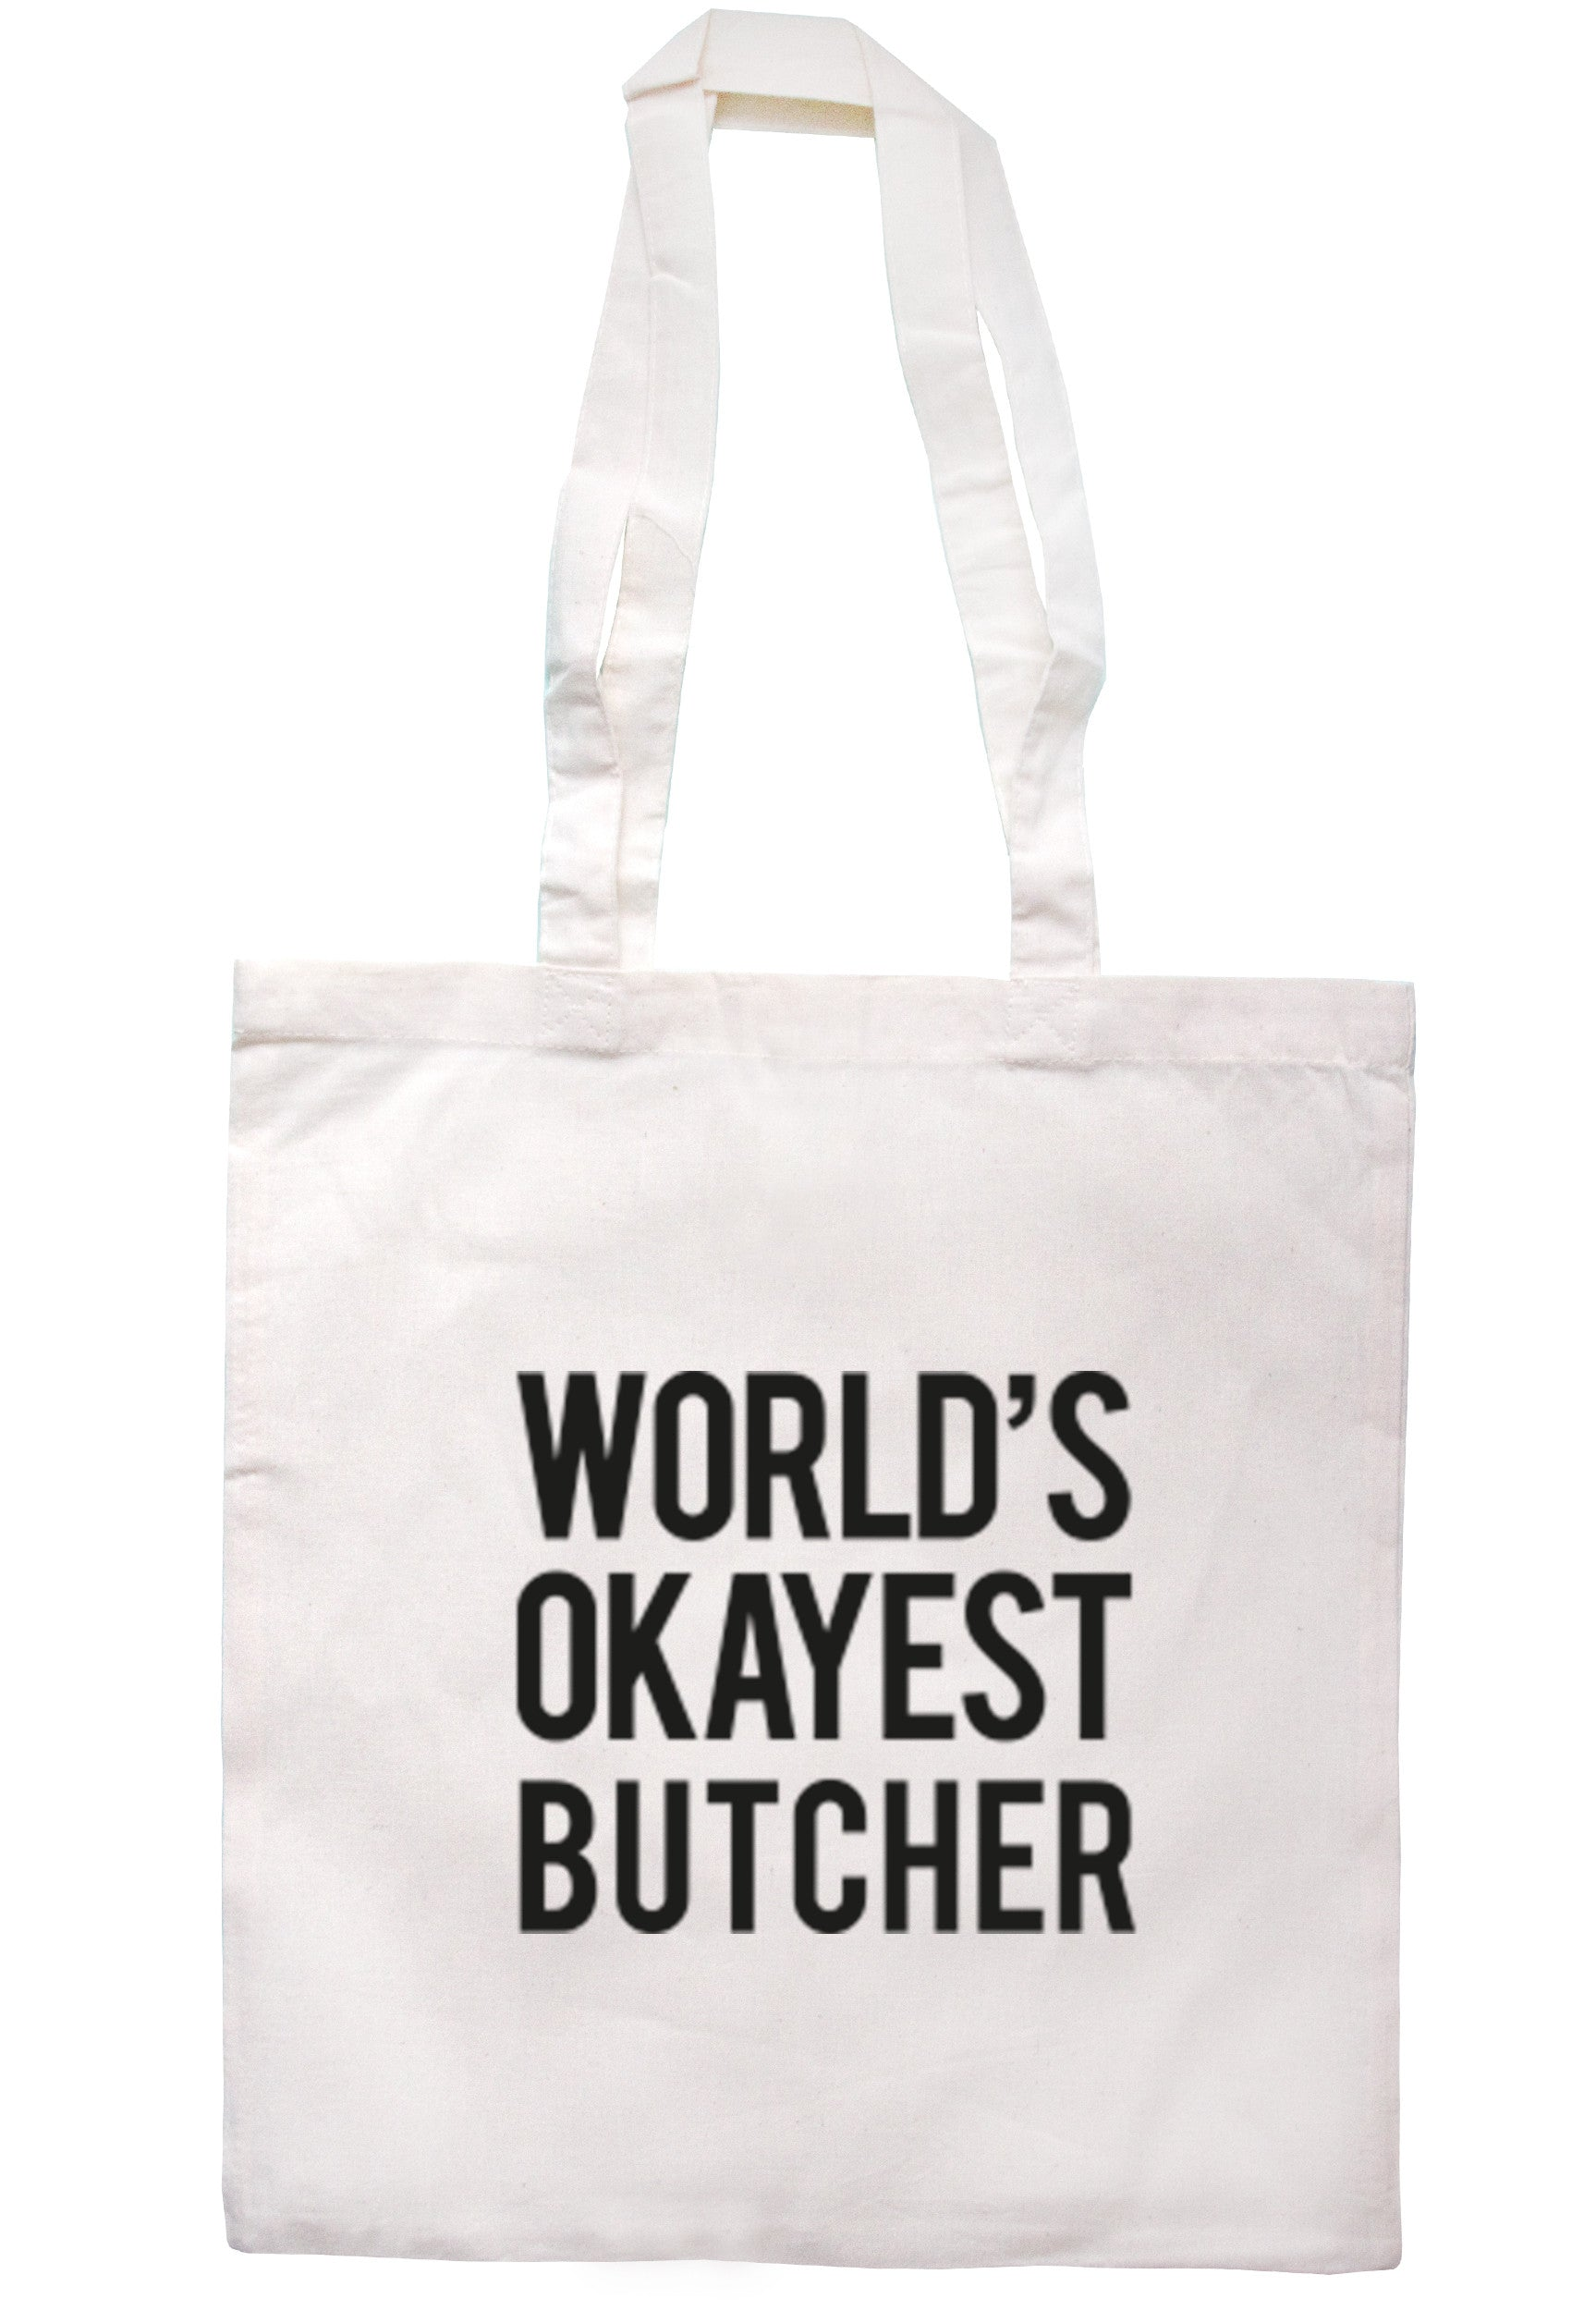 Worlds Okayest Butcher Tote Bag TB0306 - Illustrated Identity Ltd.